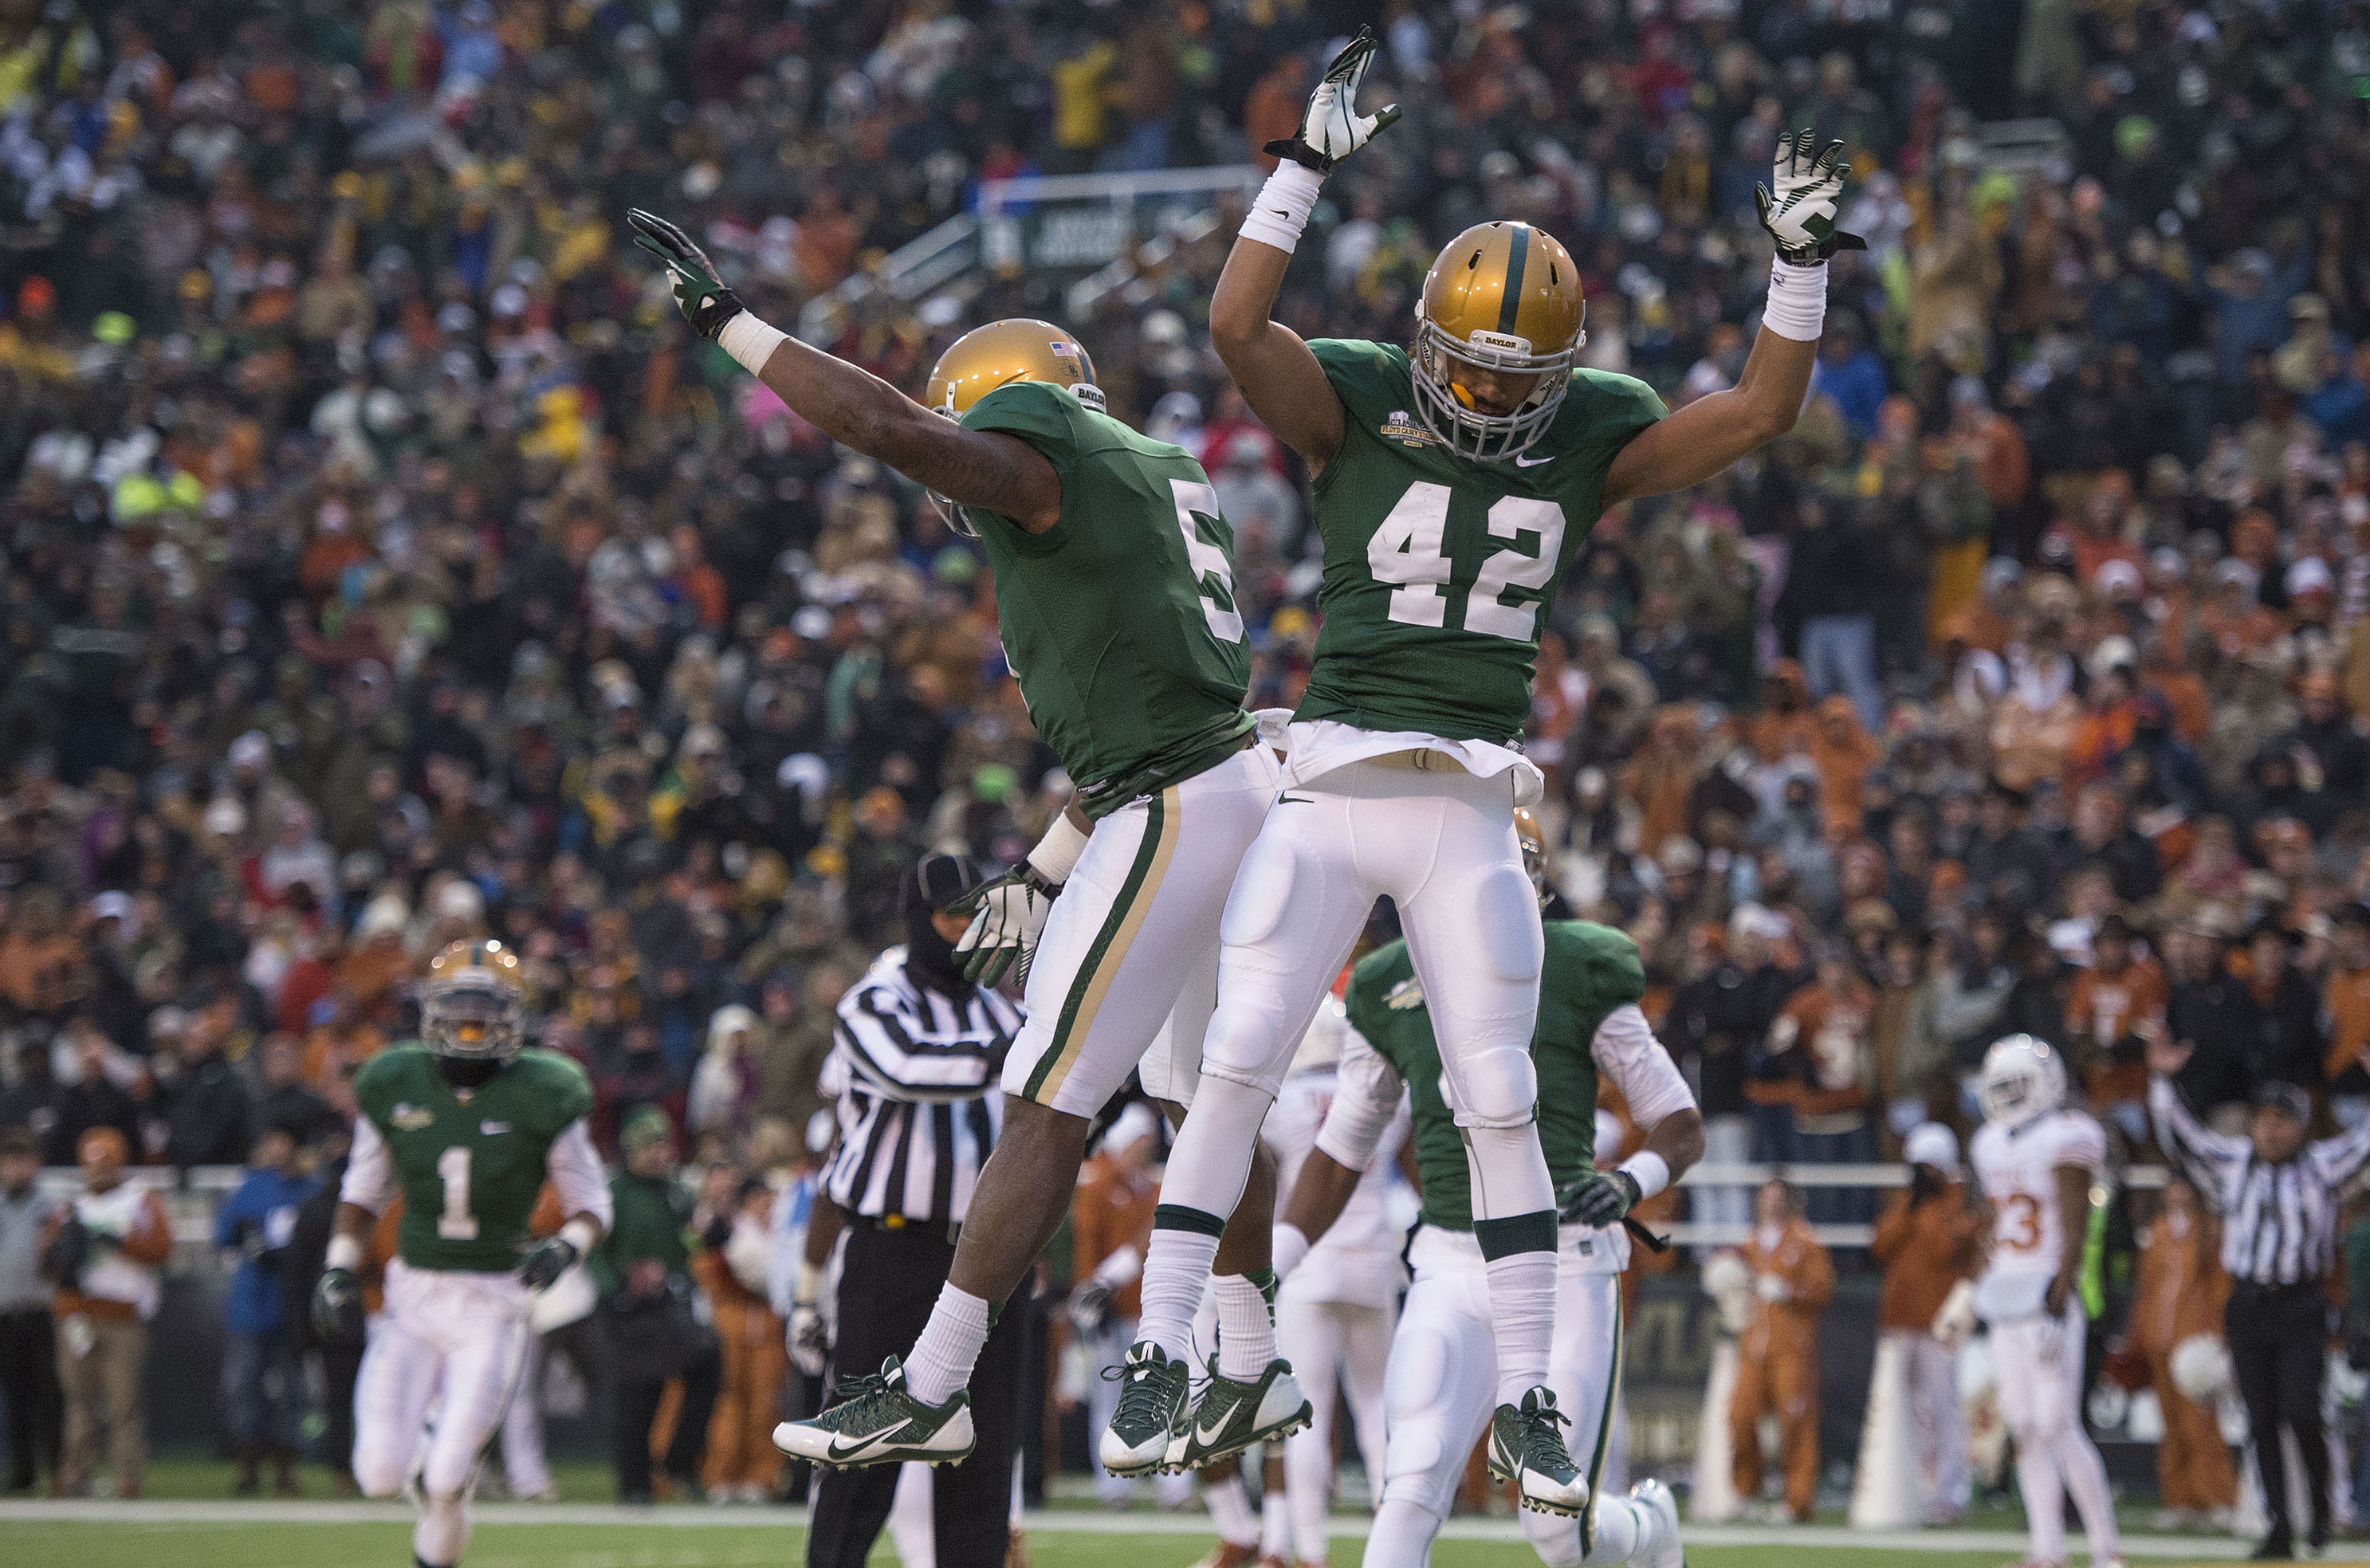 College Sports  Photos  The best celebration images from Baylor s Big 12  title-clinching win over Texas  53c2571d0